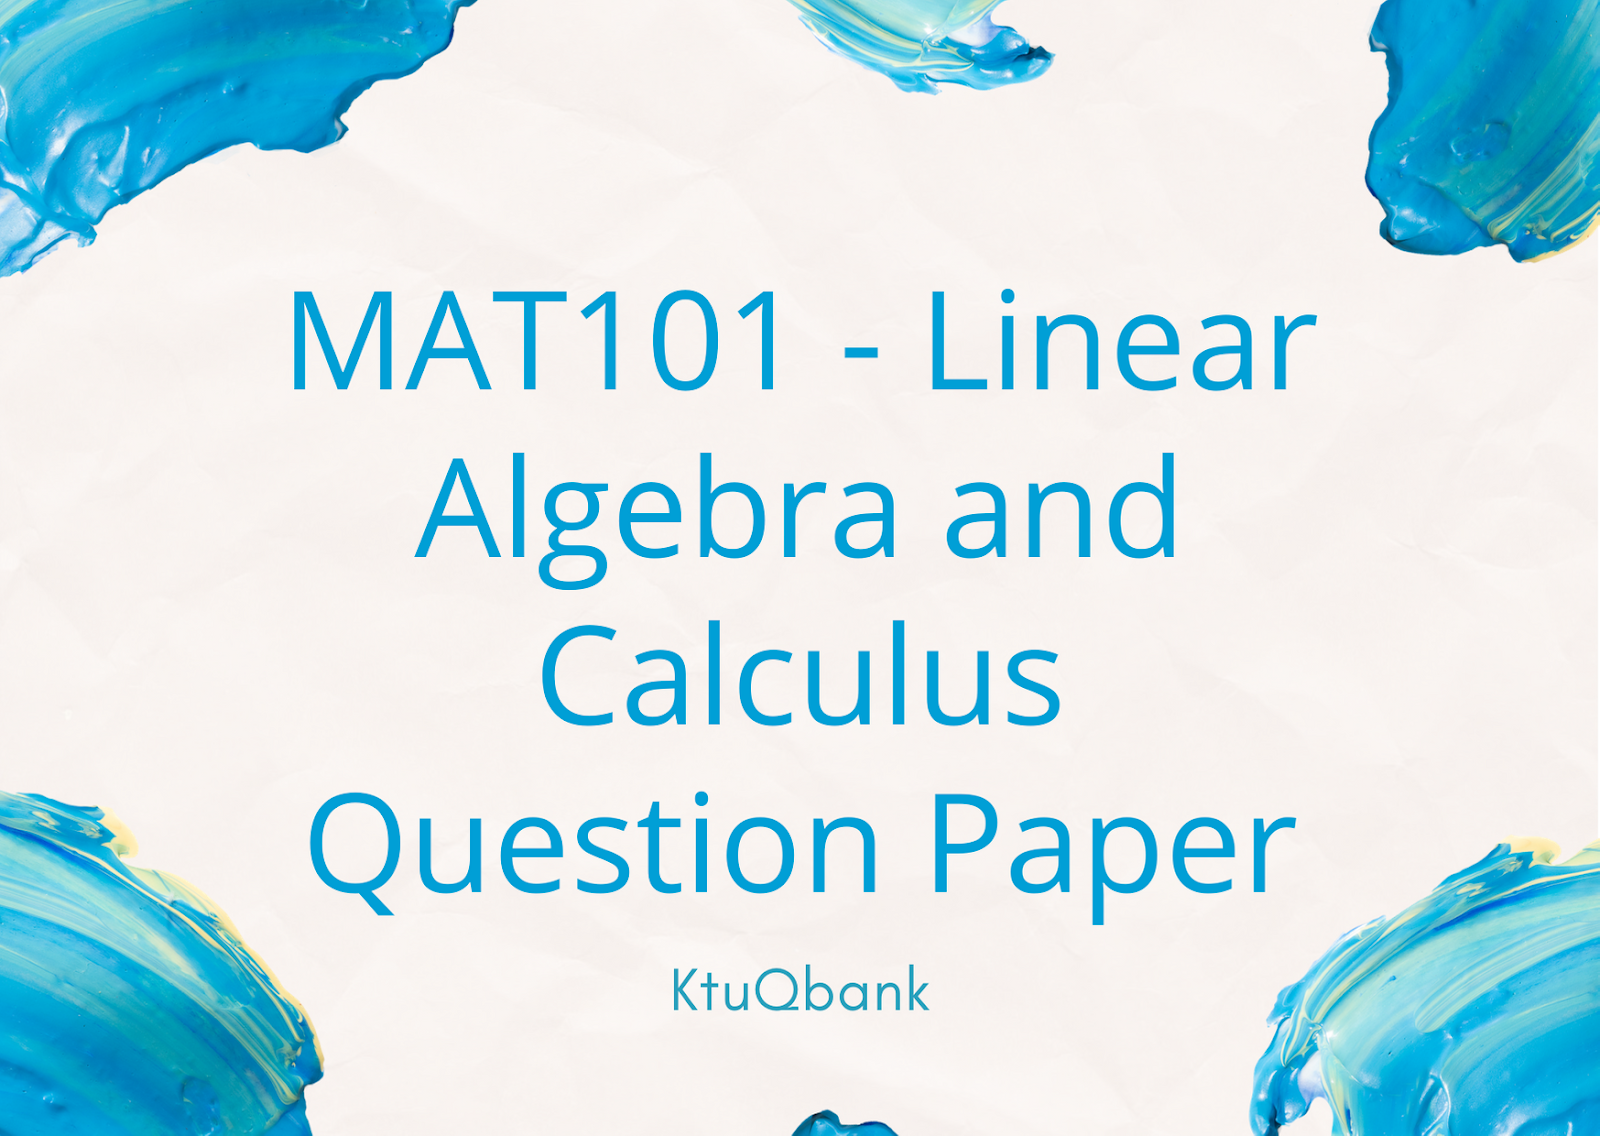 Linear Algebra & Calculus | MAT101 | Question Papers